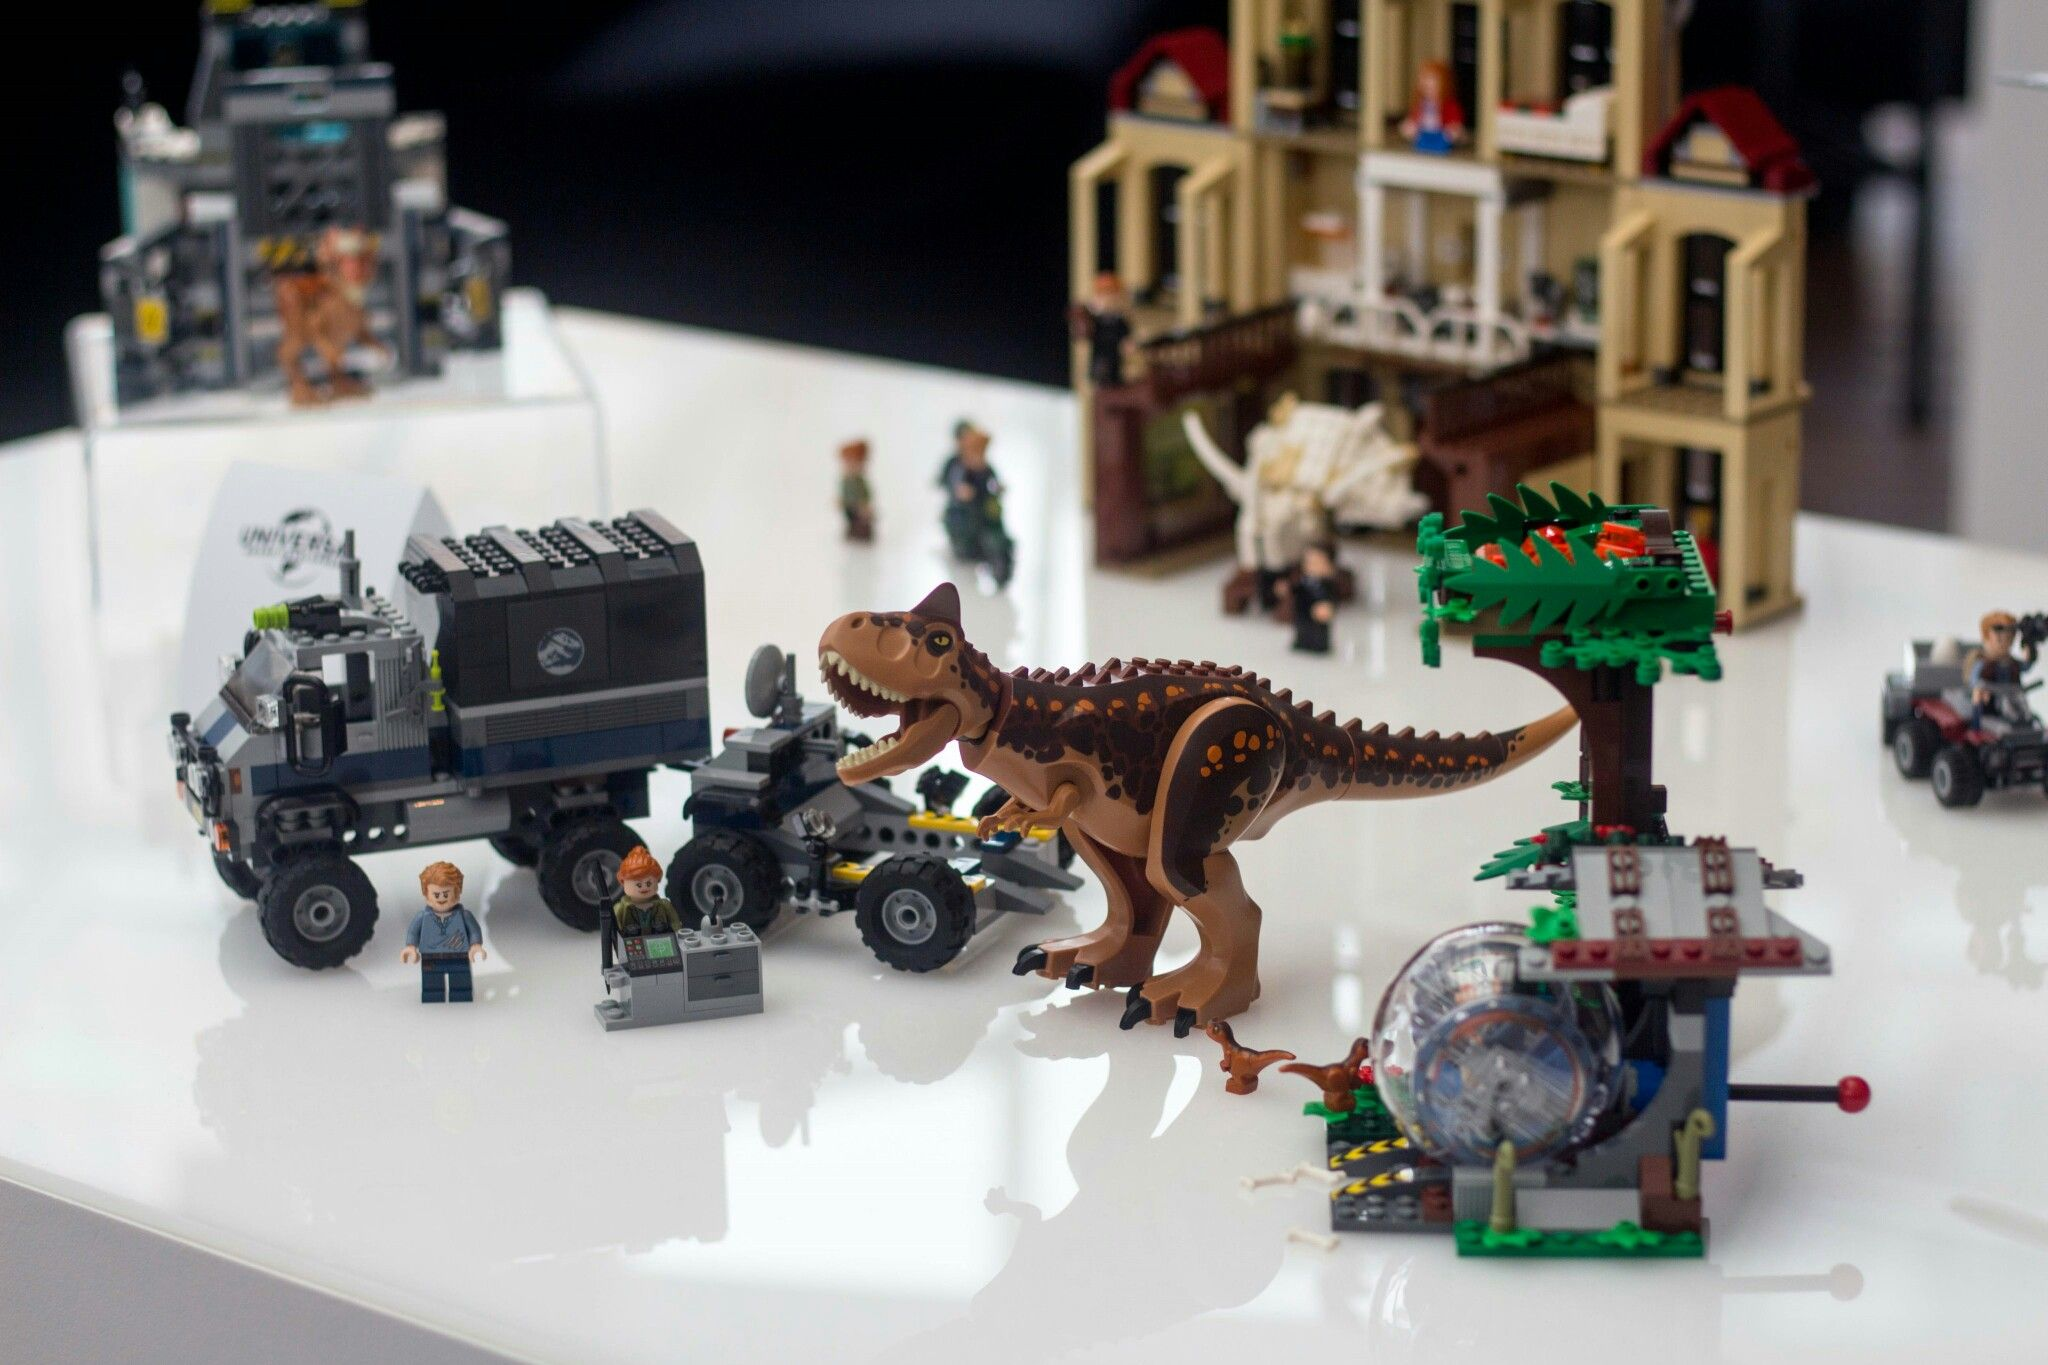 Fallen Lego Jurassic World Kingdom Sets kTOPiuwZX